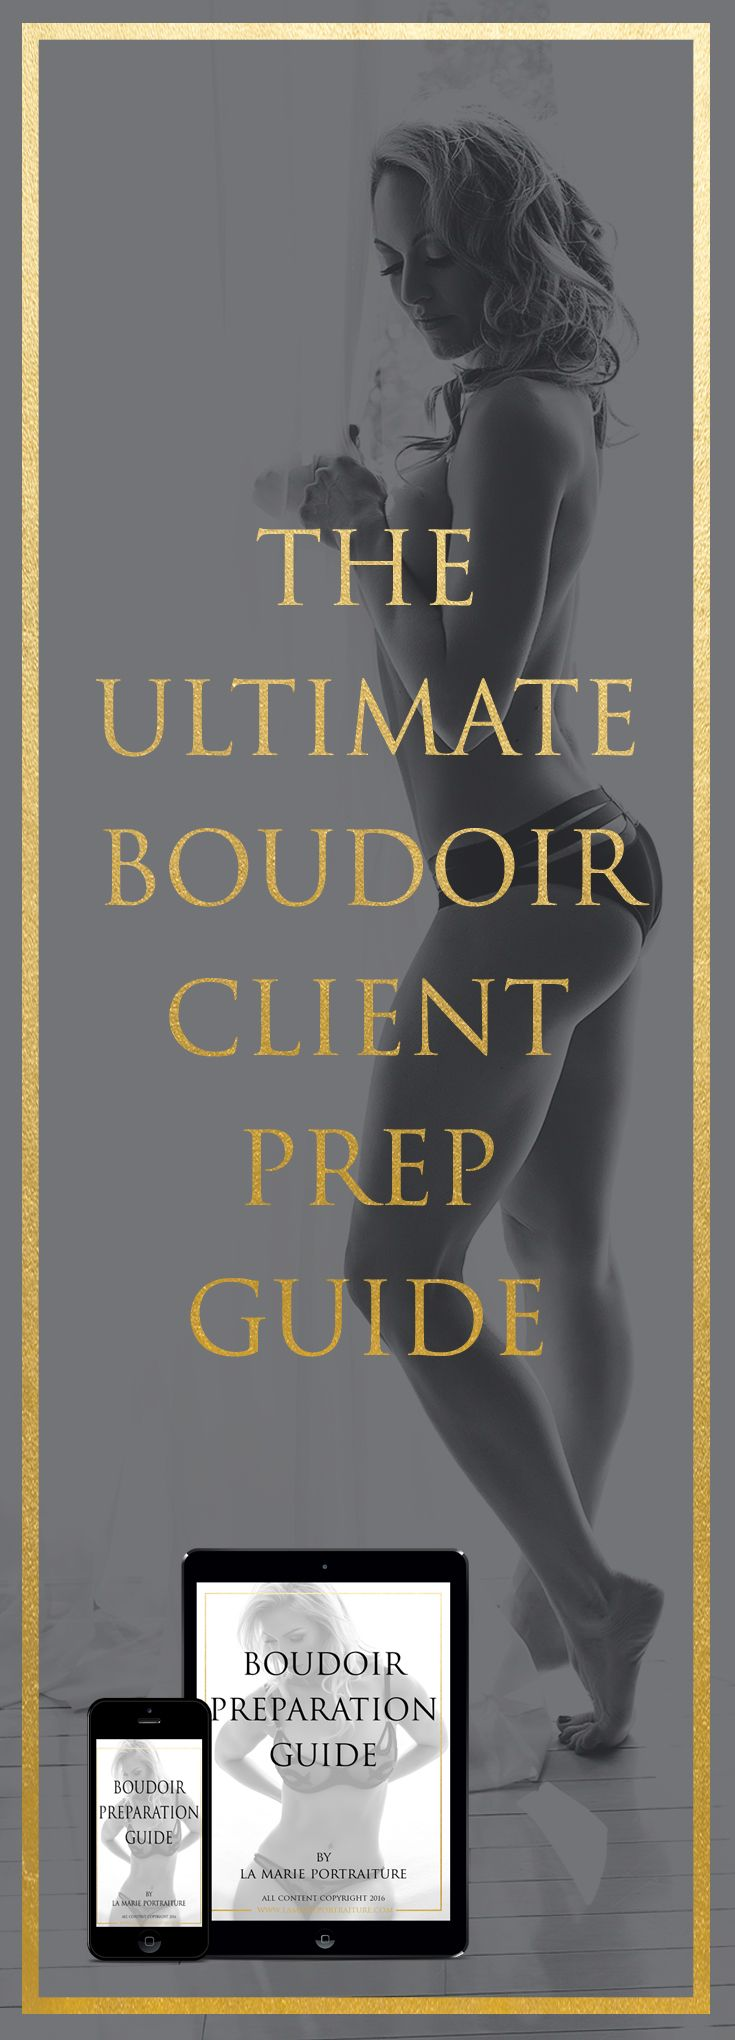 $2.99 - The Ultimate Boudoir Client Prep Guide. Everything you need to know to be prepared and feel confident for your Boudoir Shoot! #boudoirprepguide #boudoir #boudoirguide #boudoirpreptips #boudoirtips